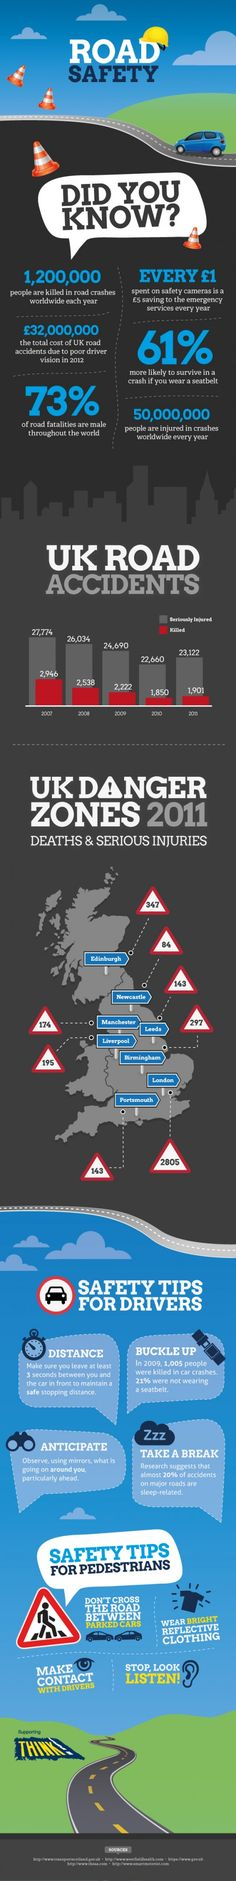 Road Safety @ Pinfographics